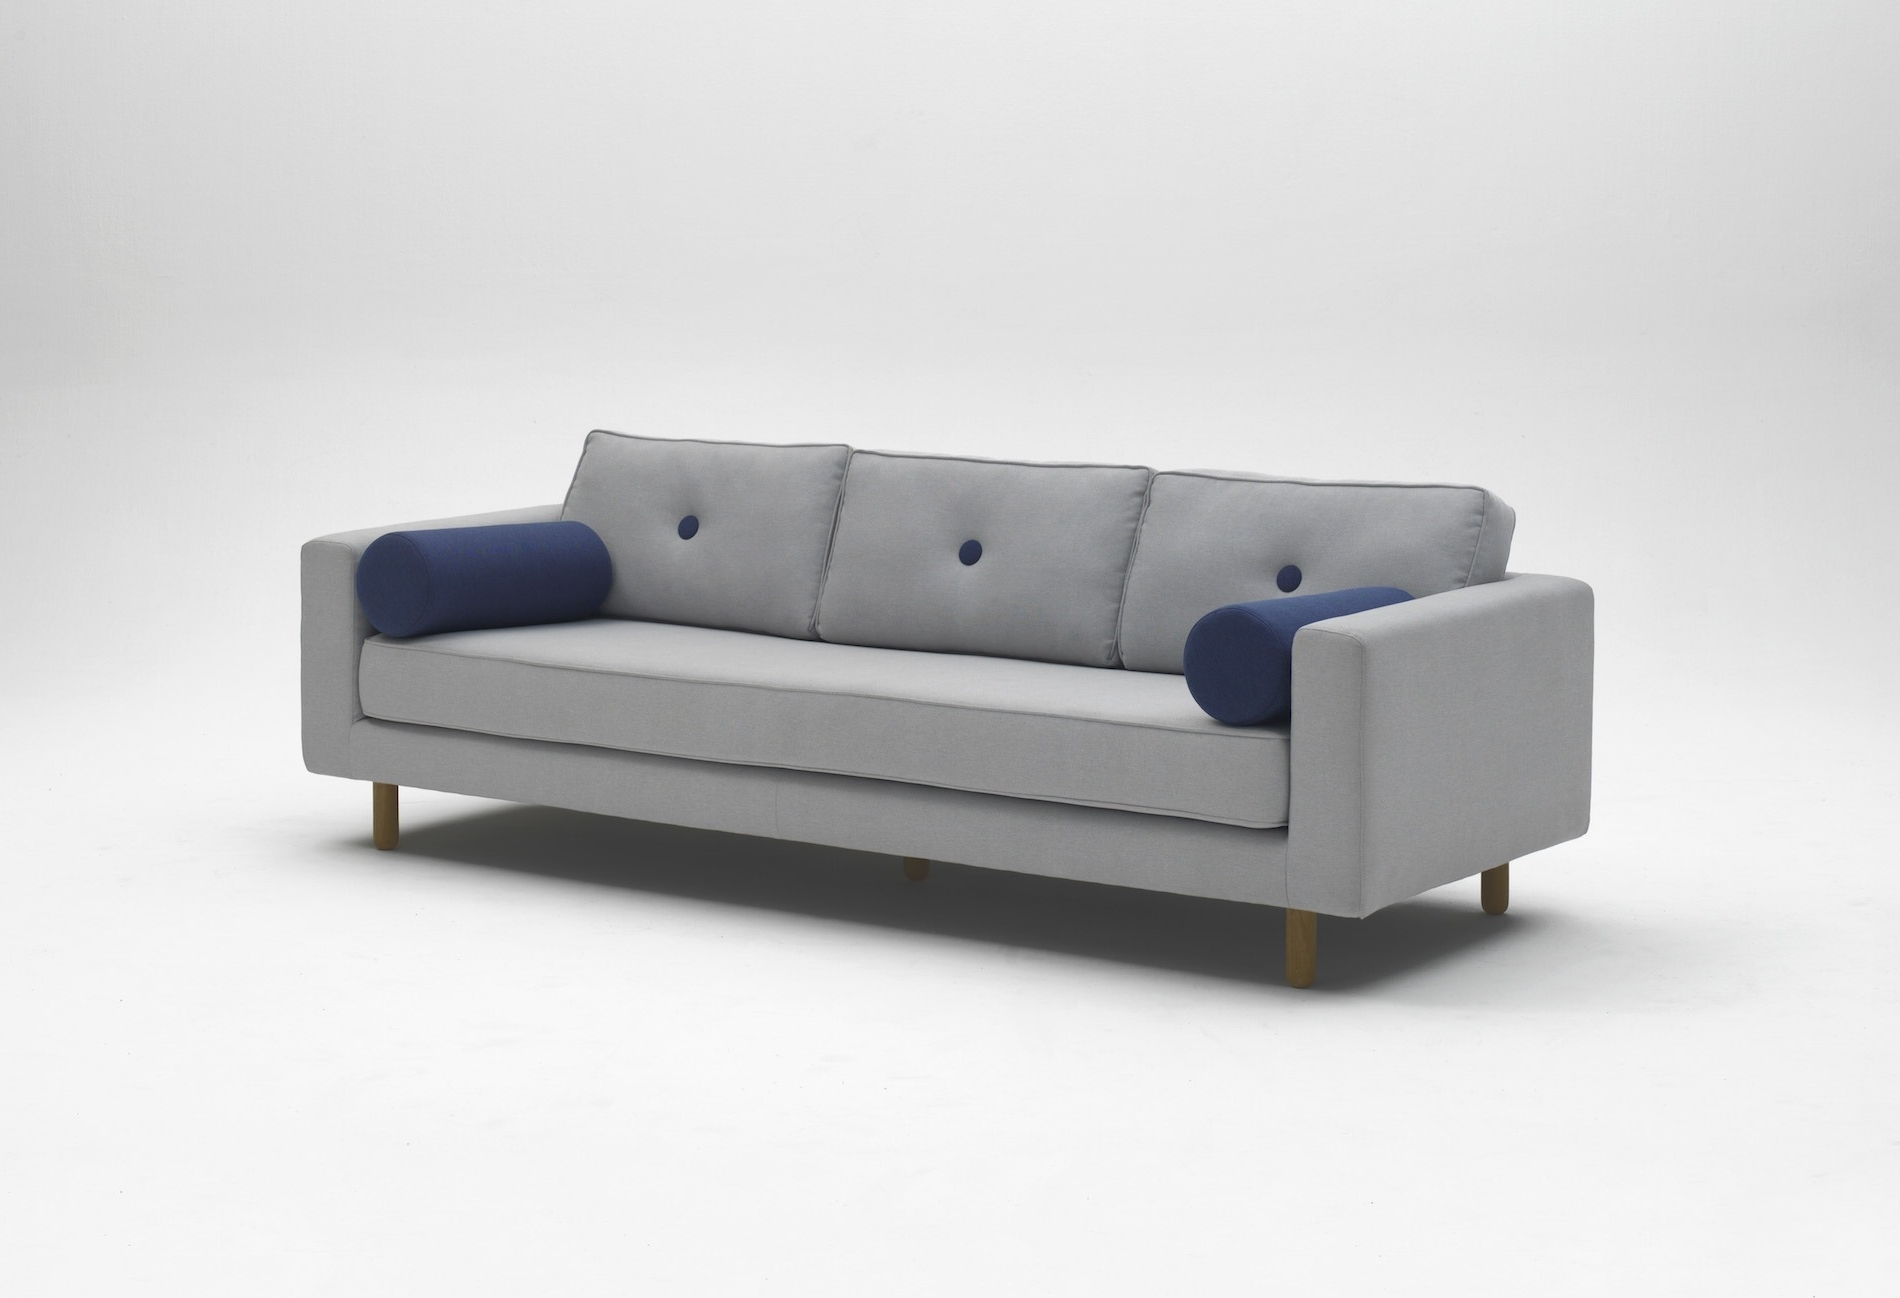 4 Seat Sofas Intended For Most Up To Date Avenue 4 Seat Fabric Sofa – Crowdyhouse (Gallery 11 of 20)